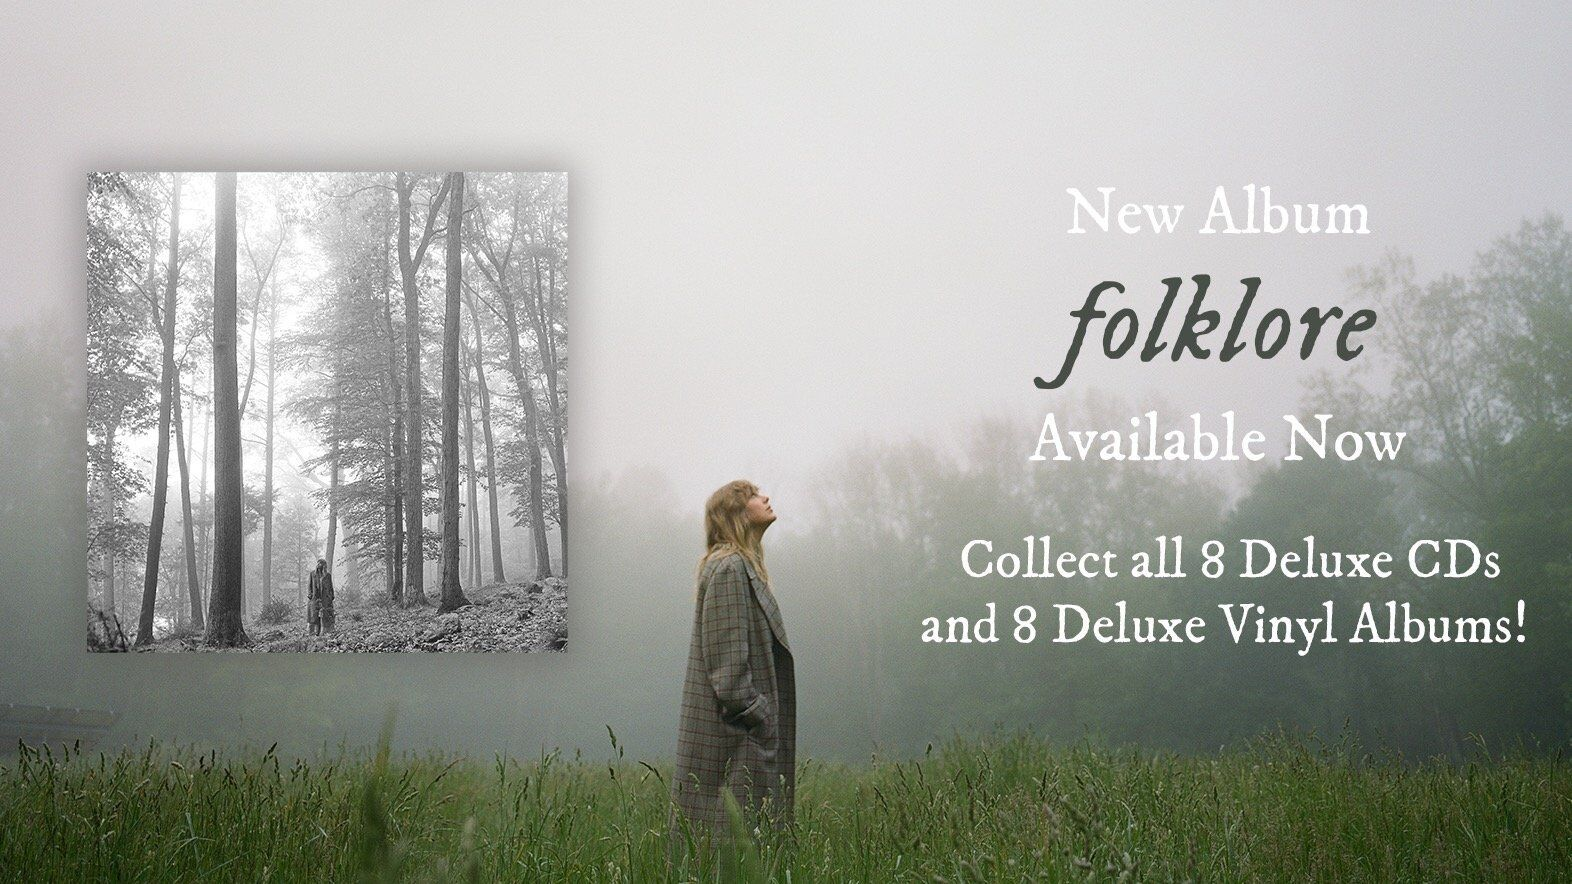 PREORDER Taylor Swift's 'Folklore' In The Philippines 🌳